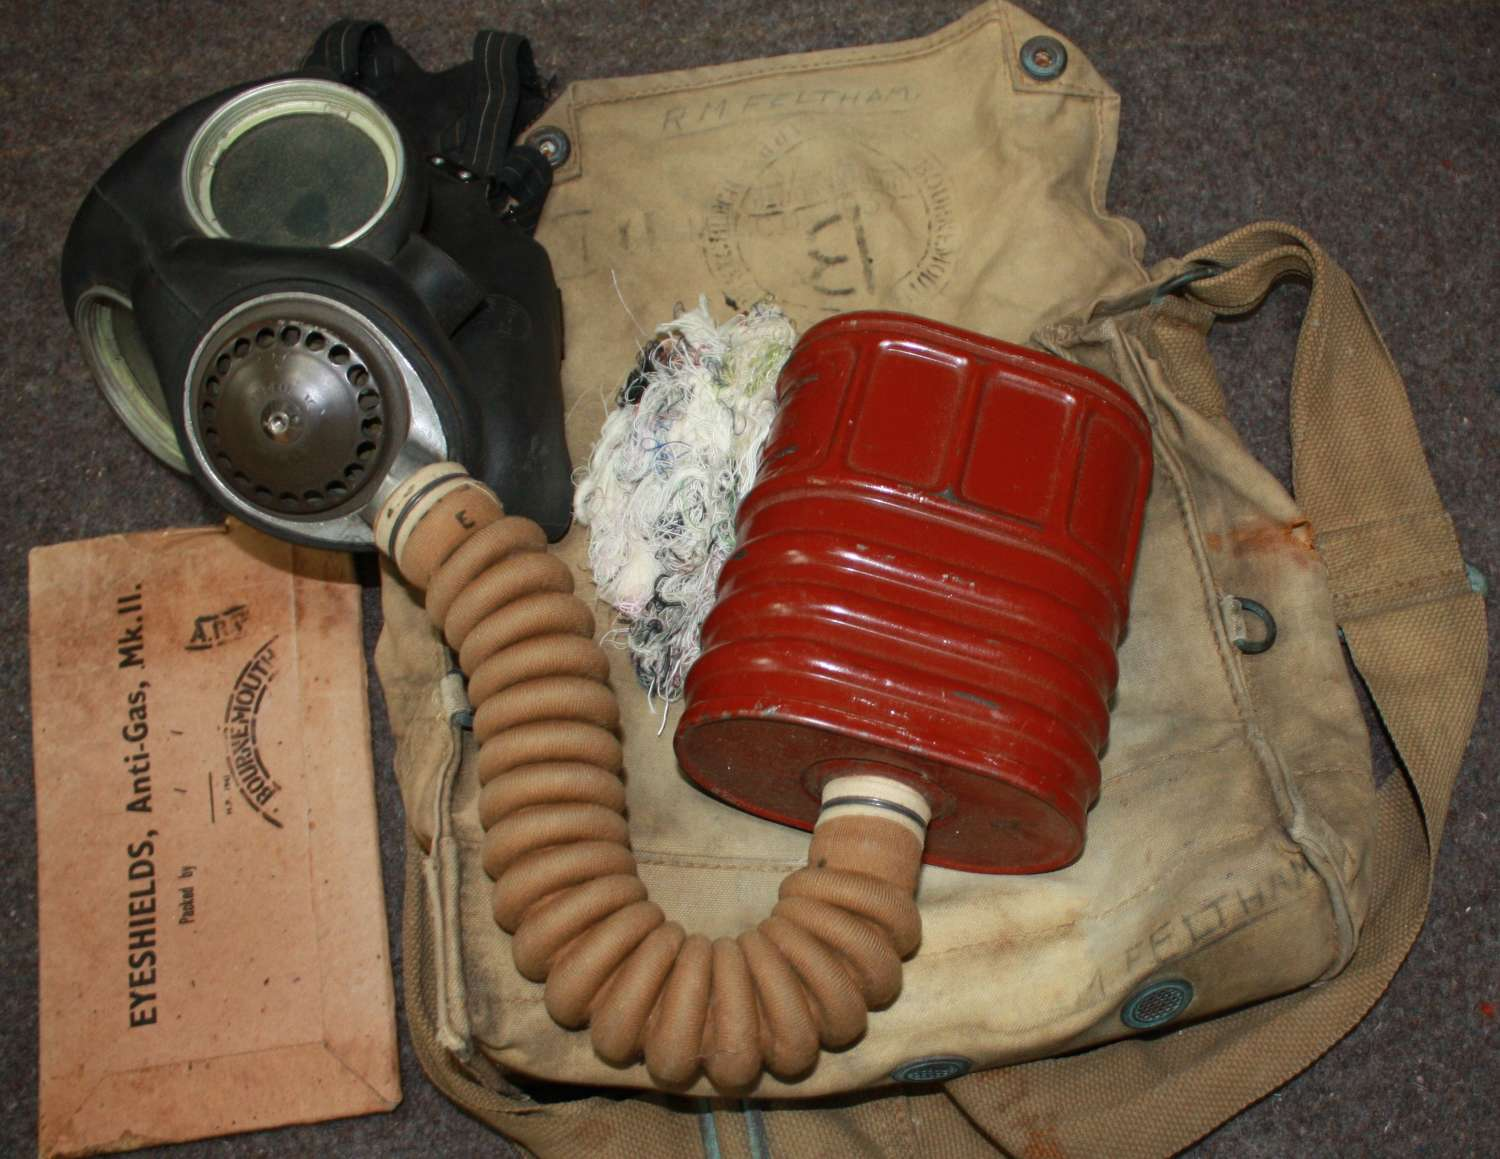 A WWII BOURNEMOUTH ARP GAS MASK